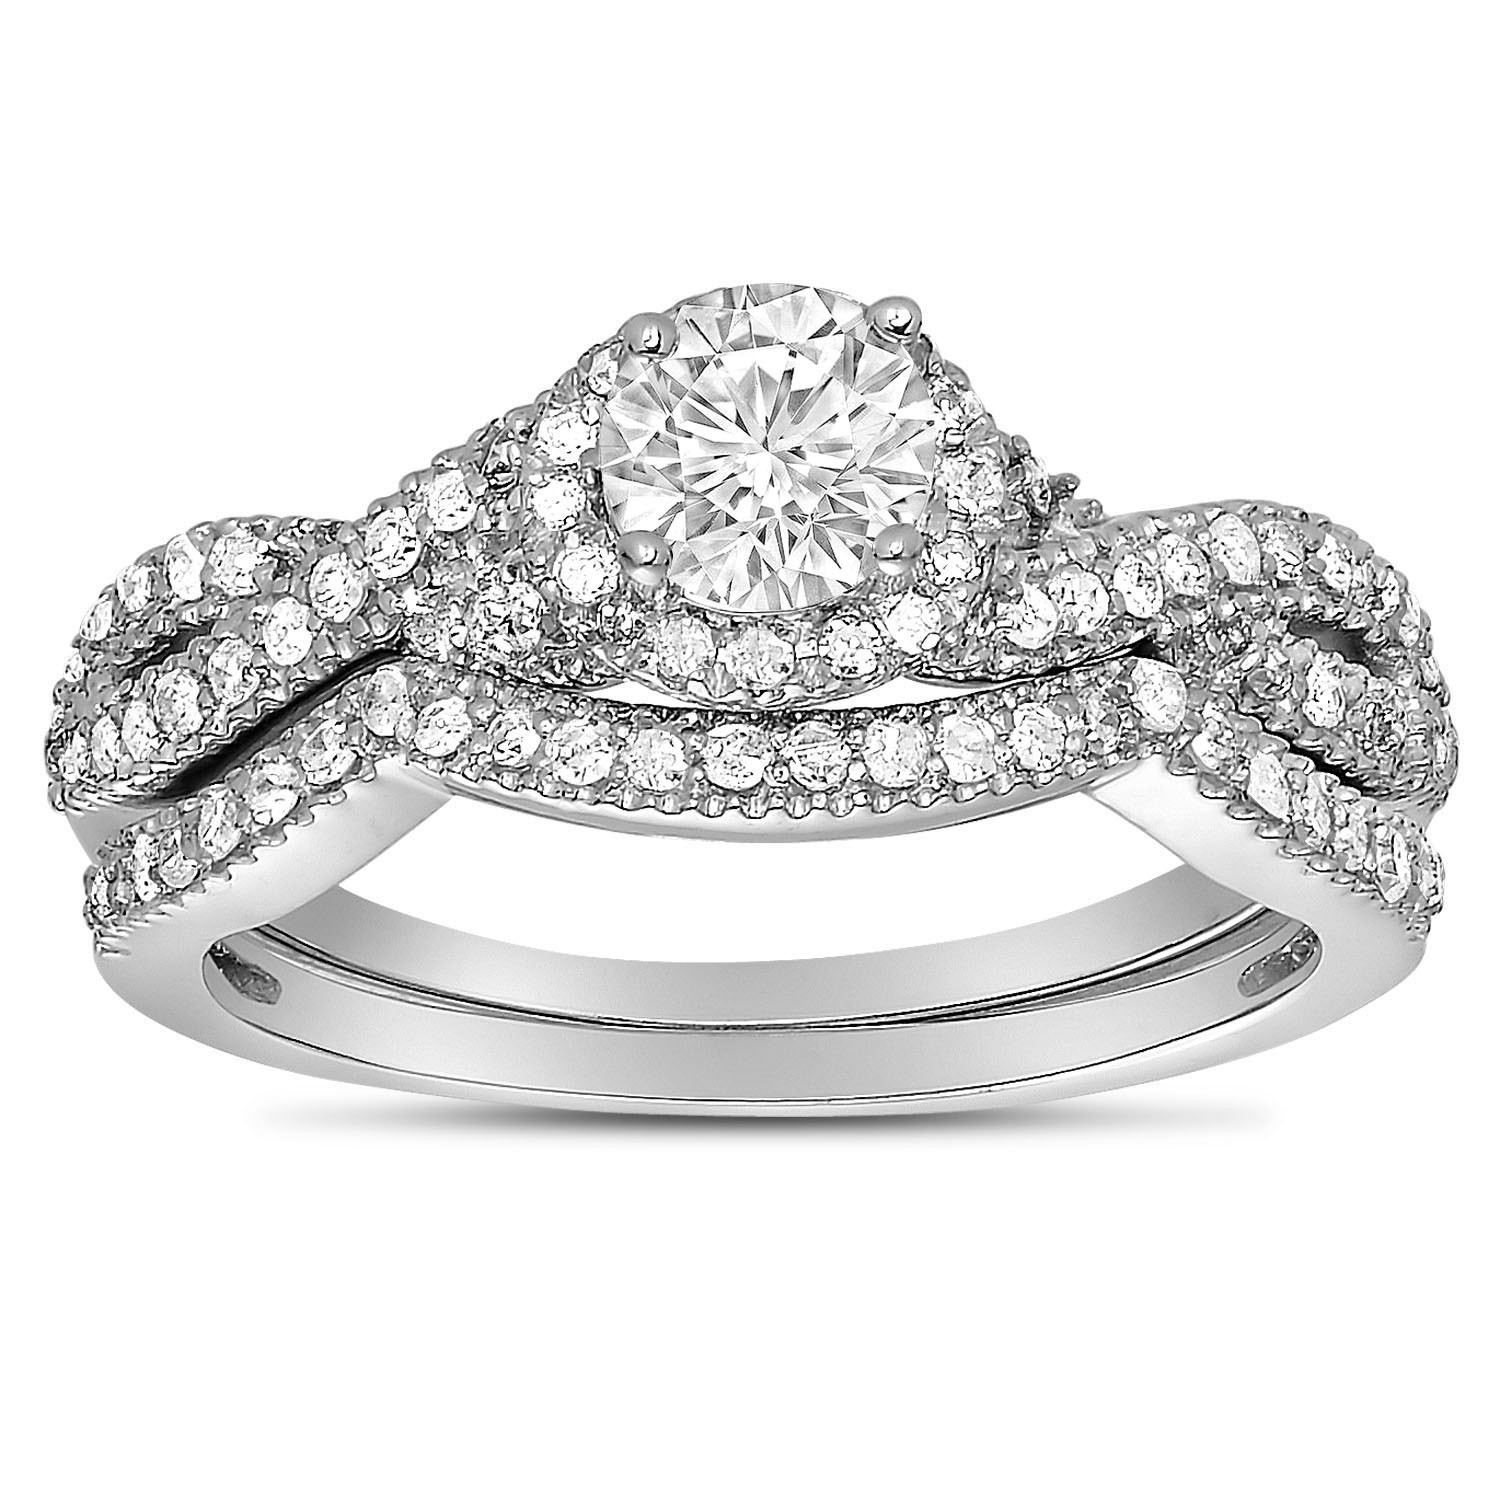 2 Carat Round Diamond Infinity Wedding Ring Set in White Gold for